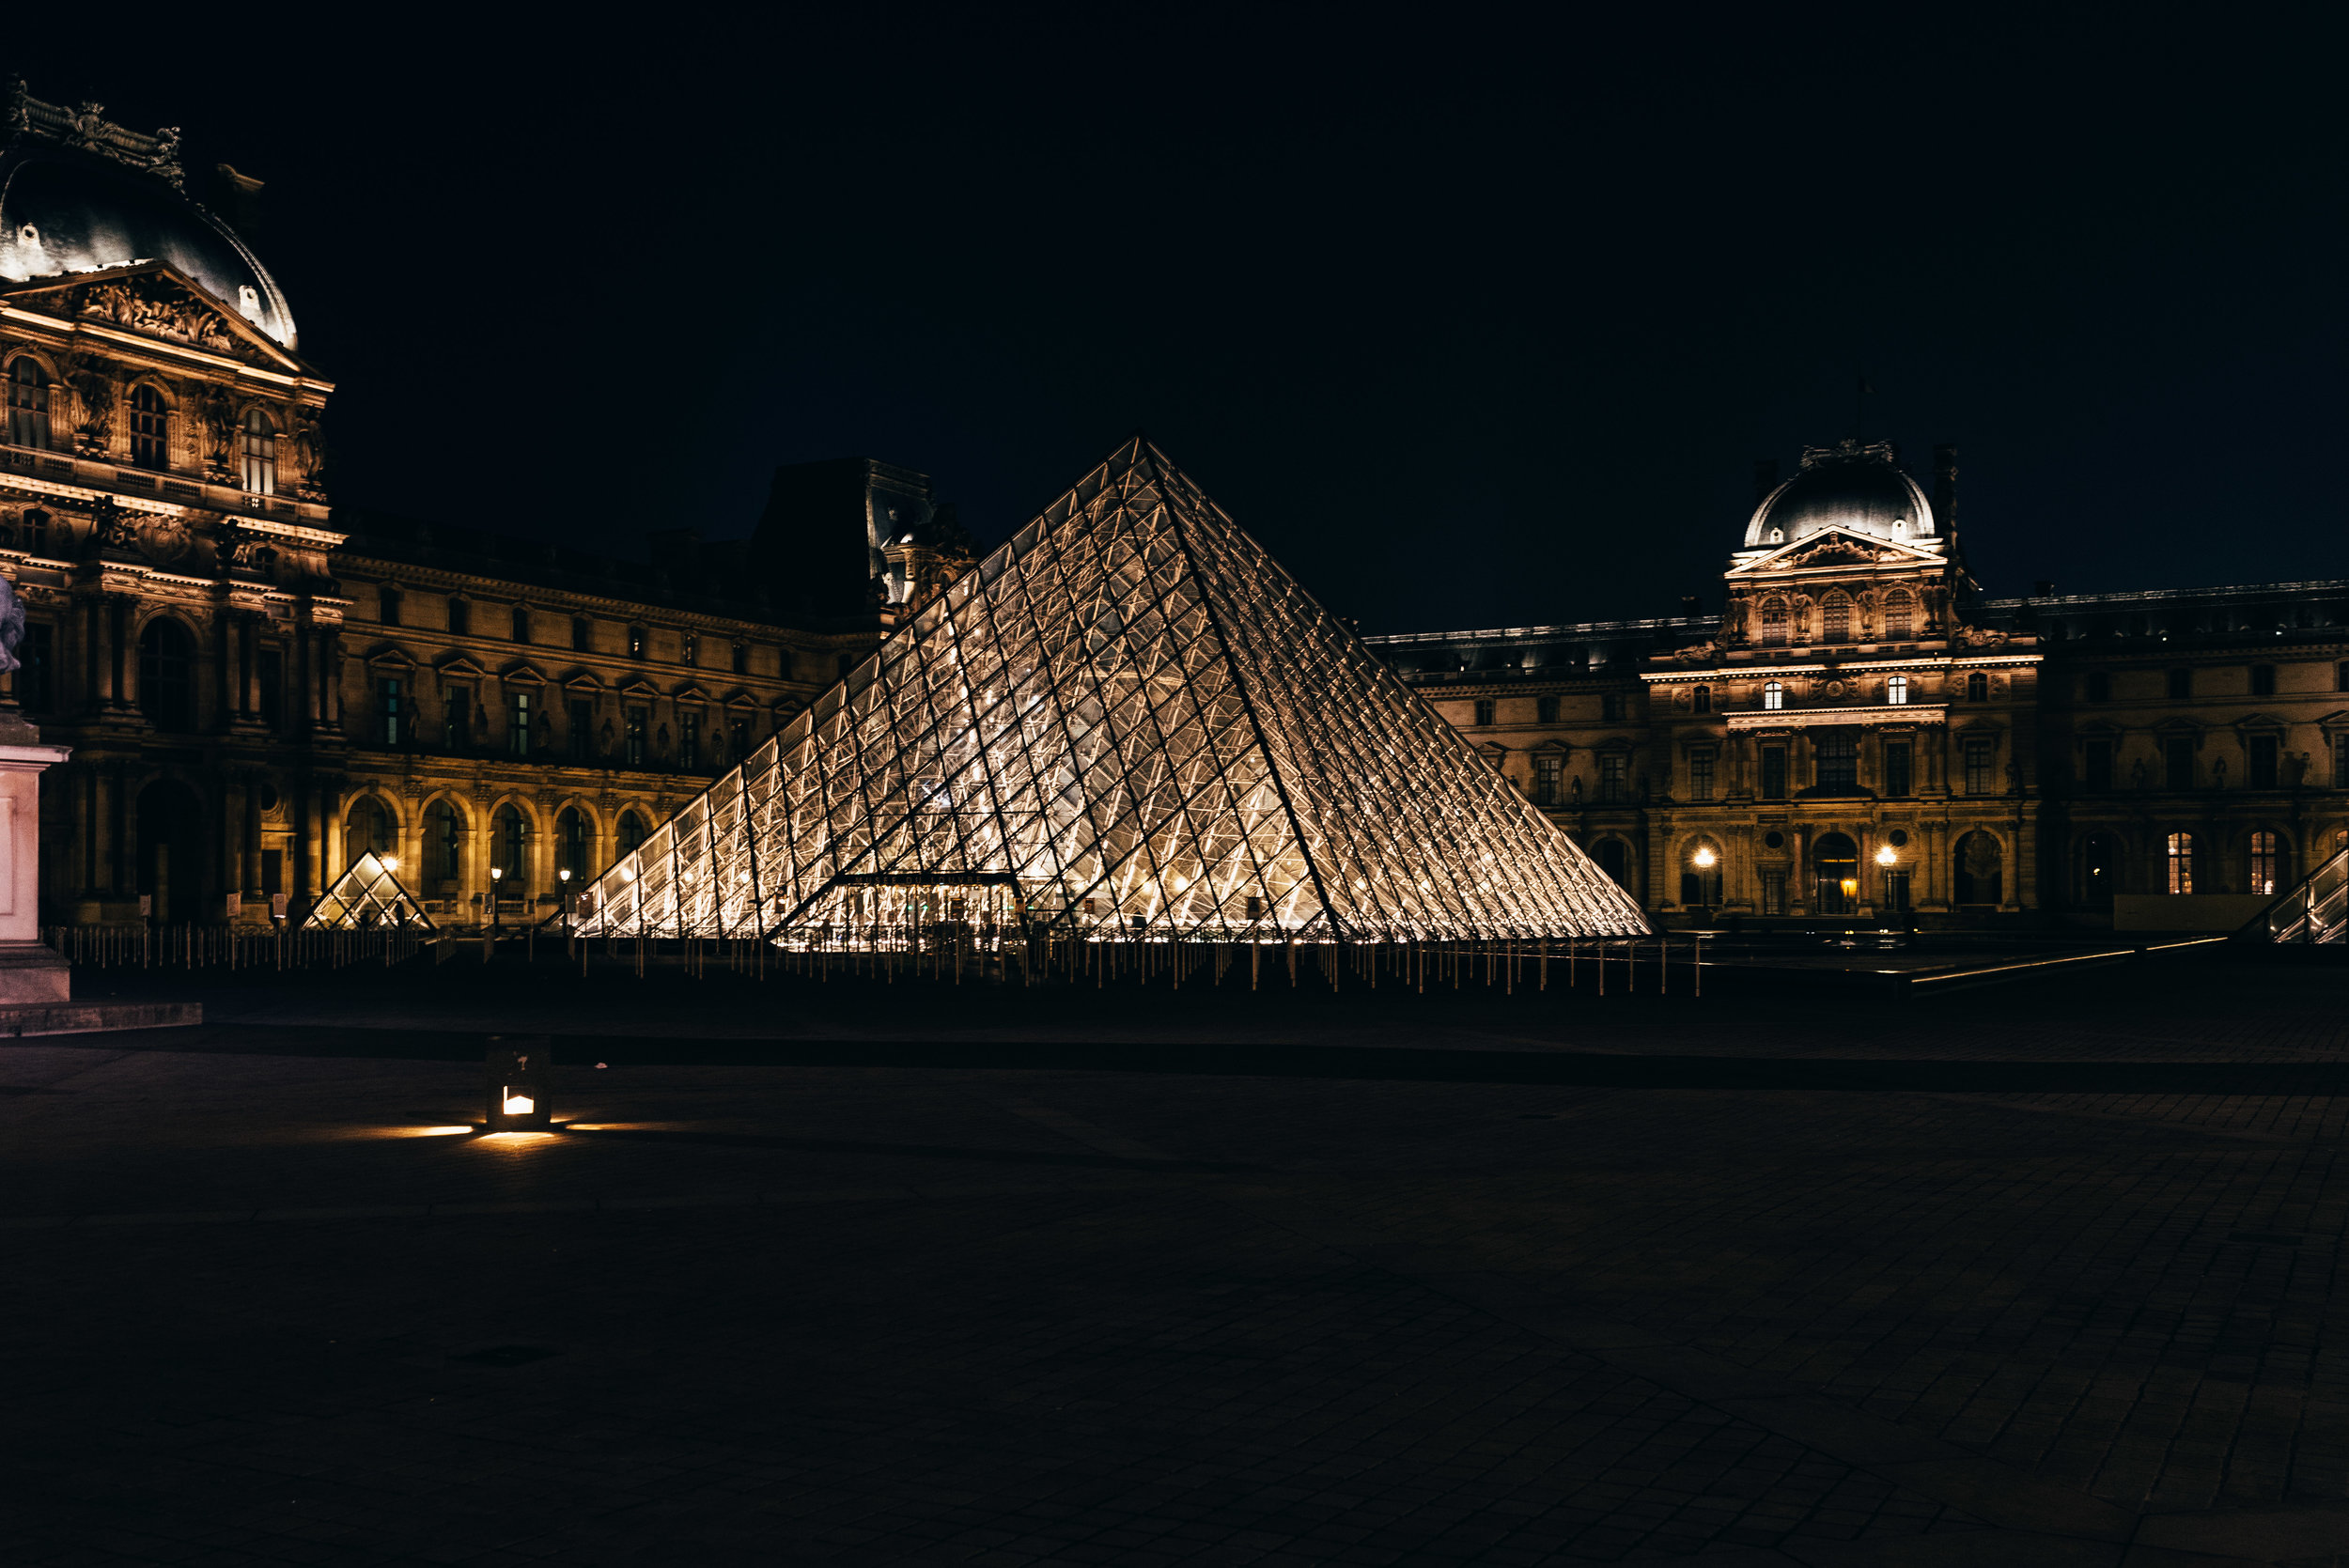 Musee de Louvre at night.jpg